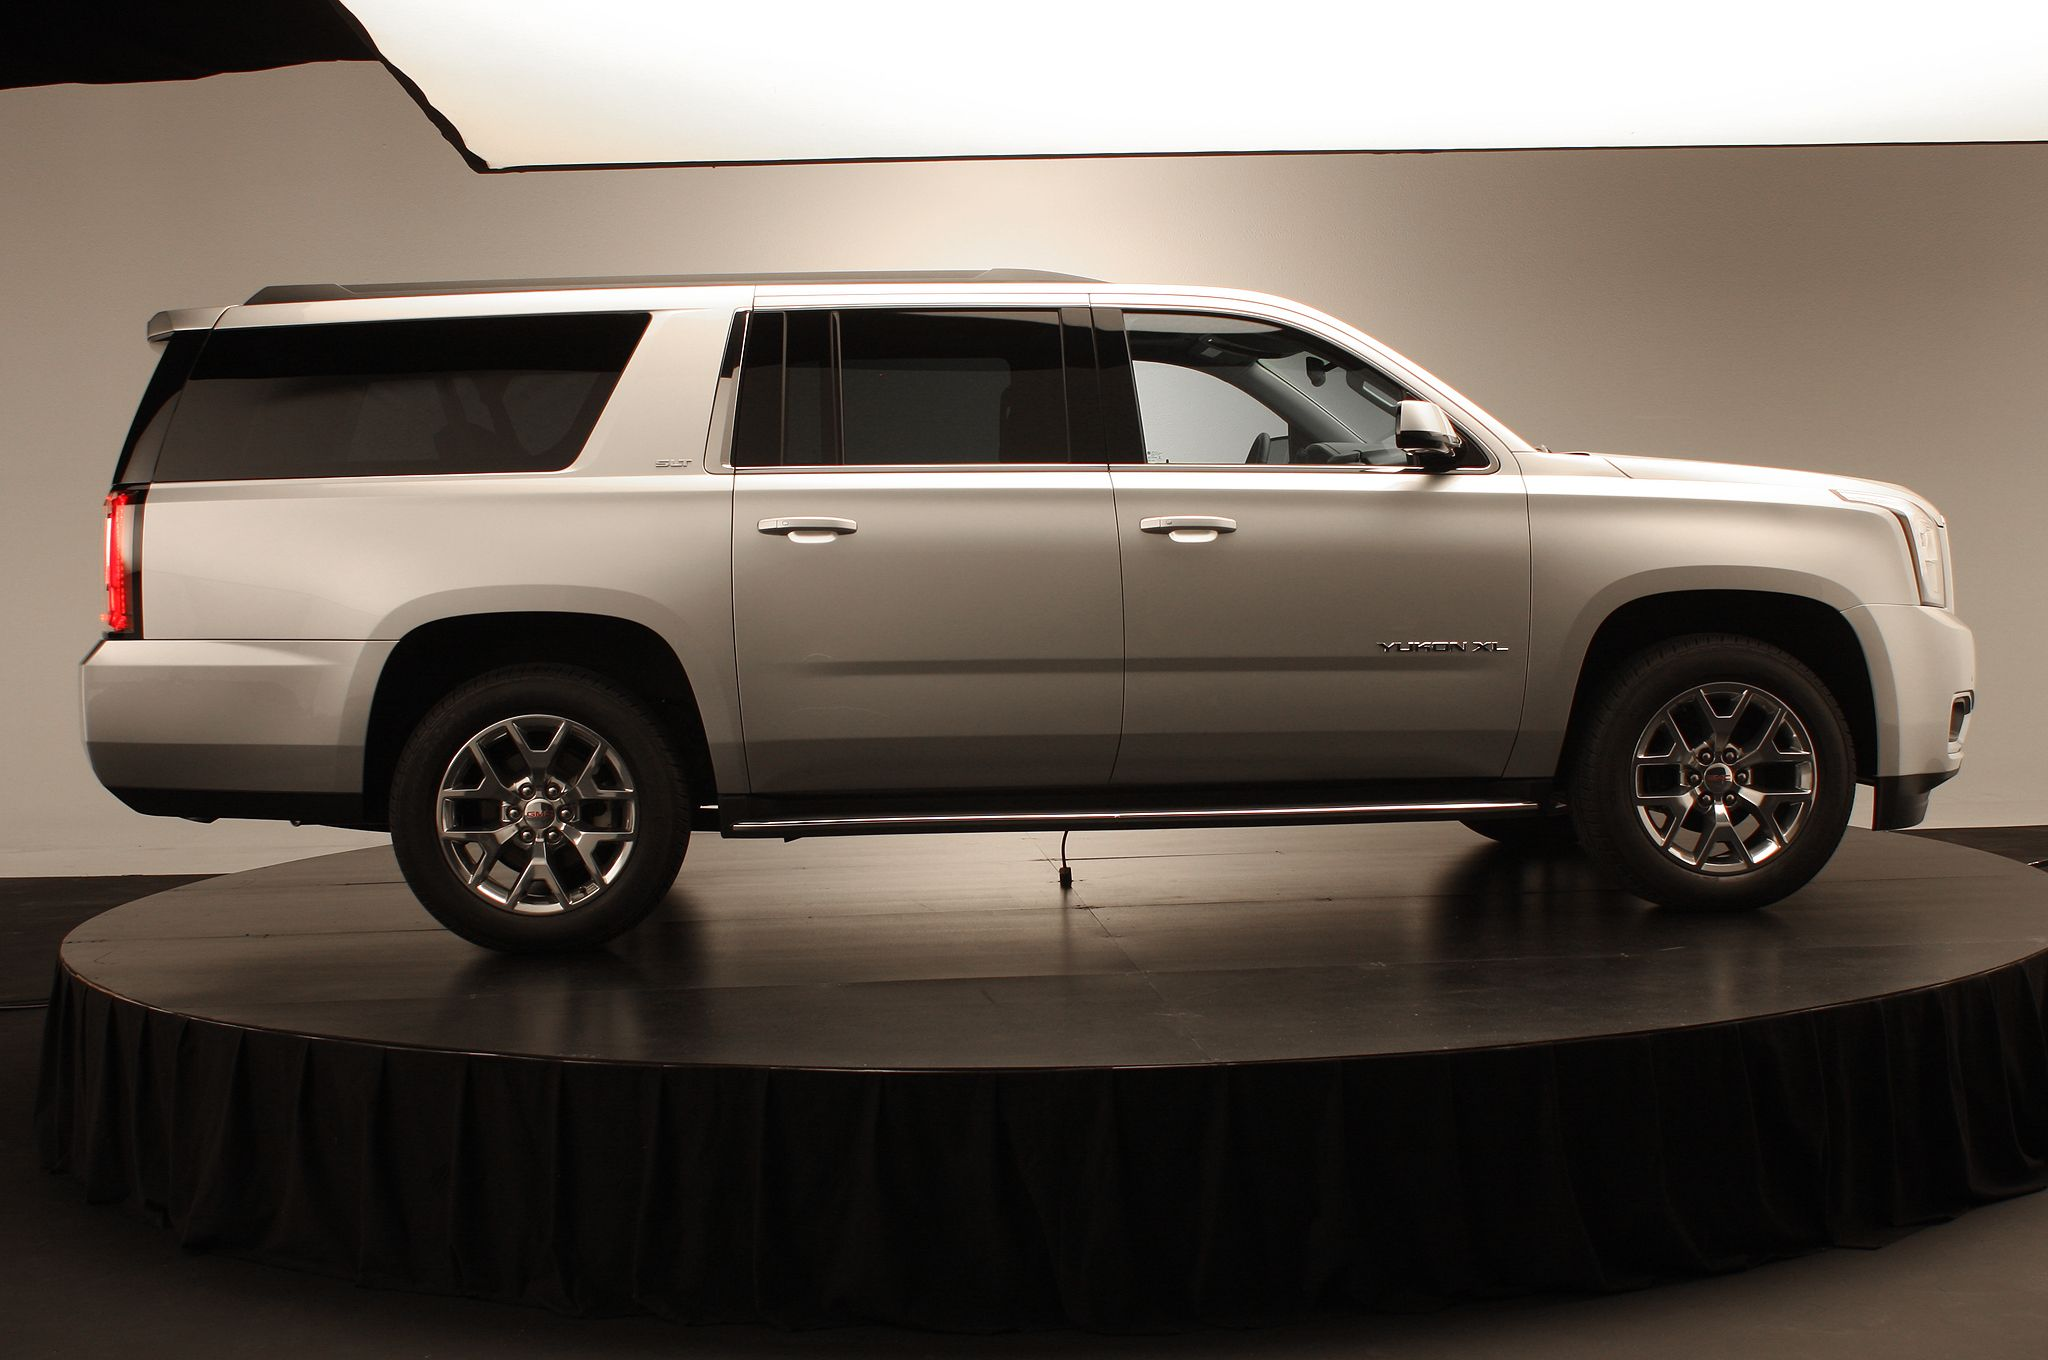 2015 chevy and gmc truck test drives 2015 chevy tahoe yukon denali and chevy